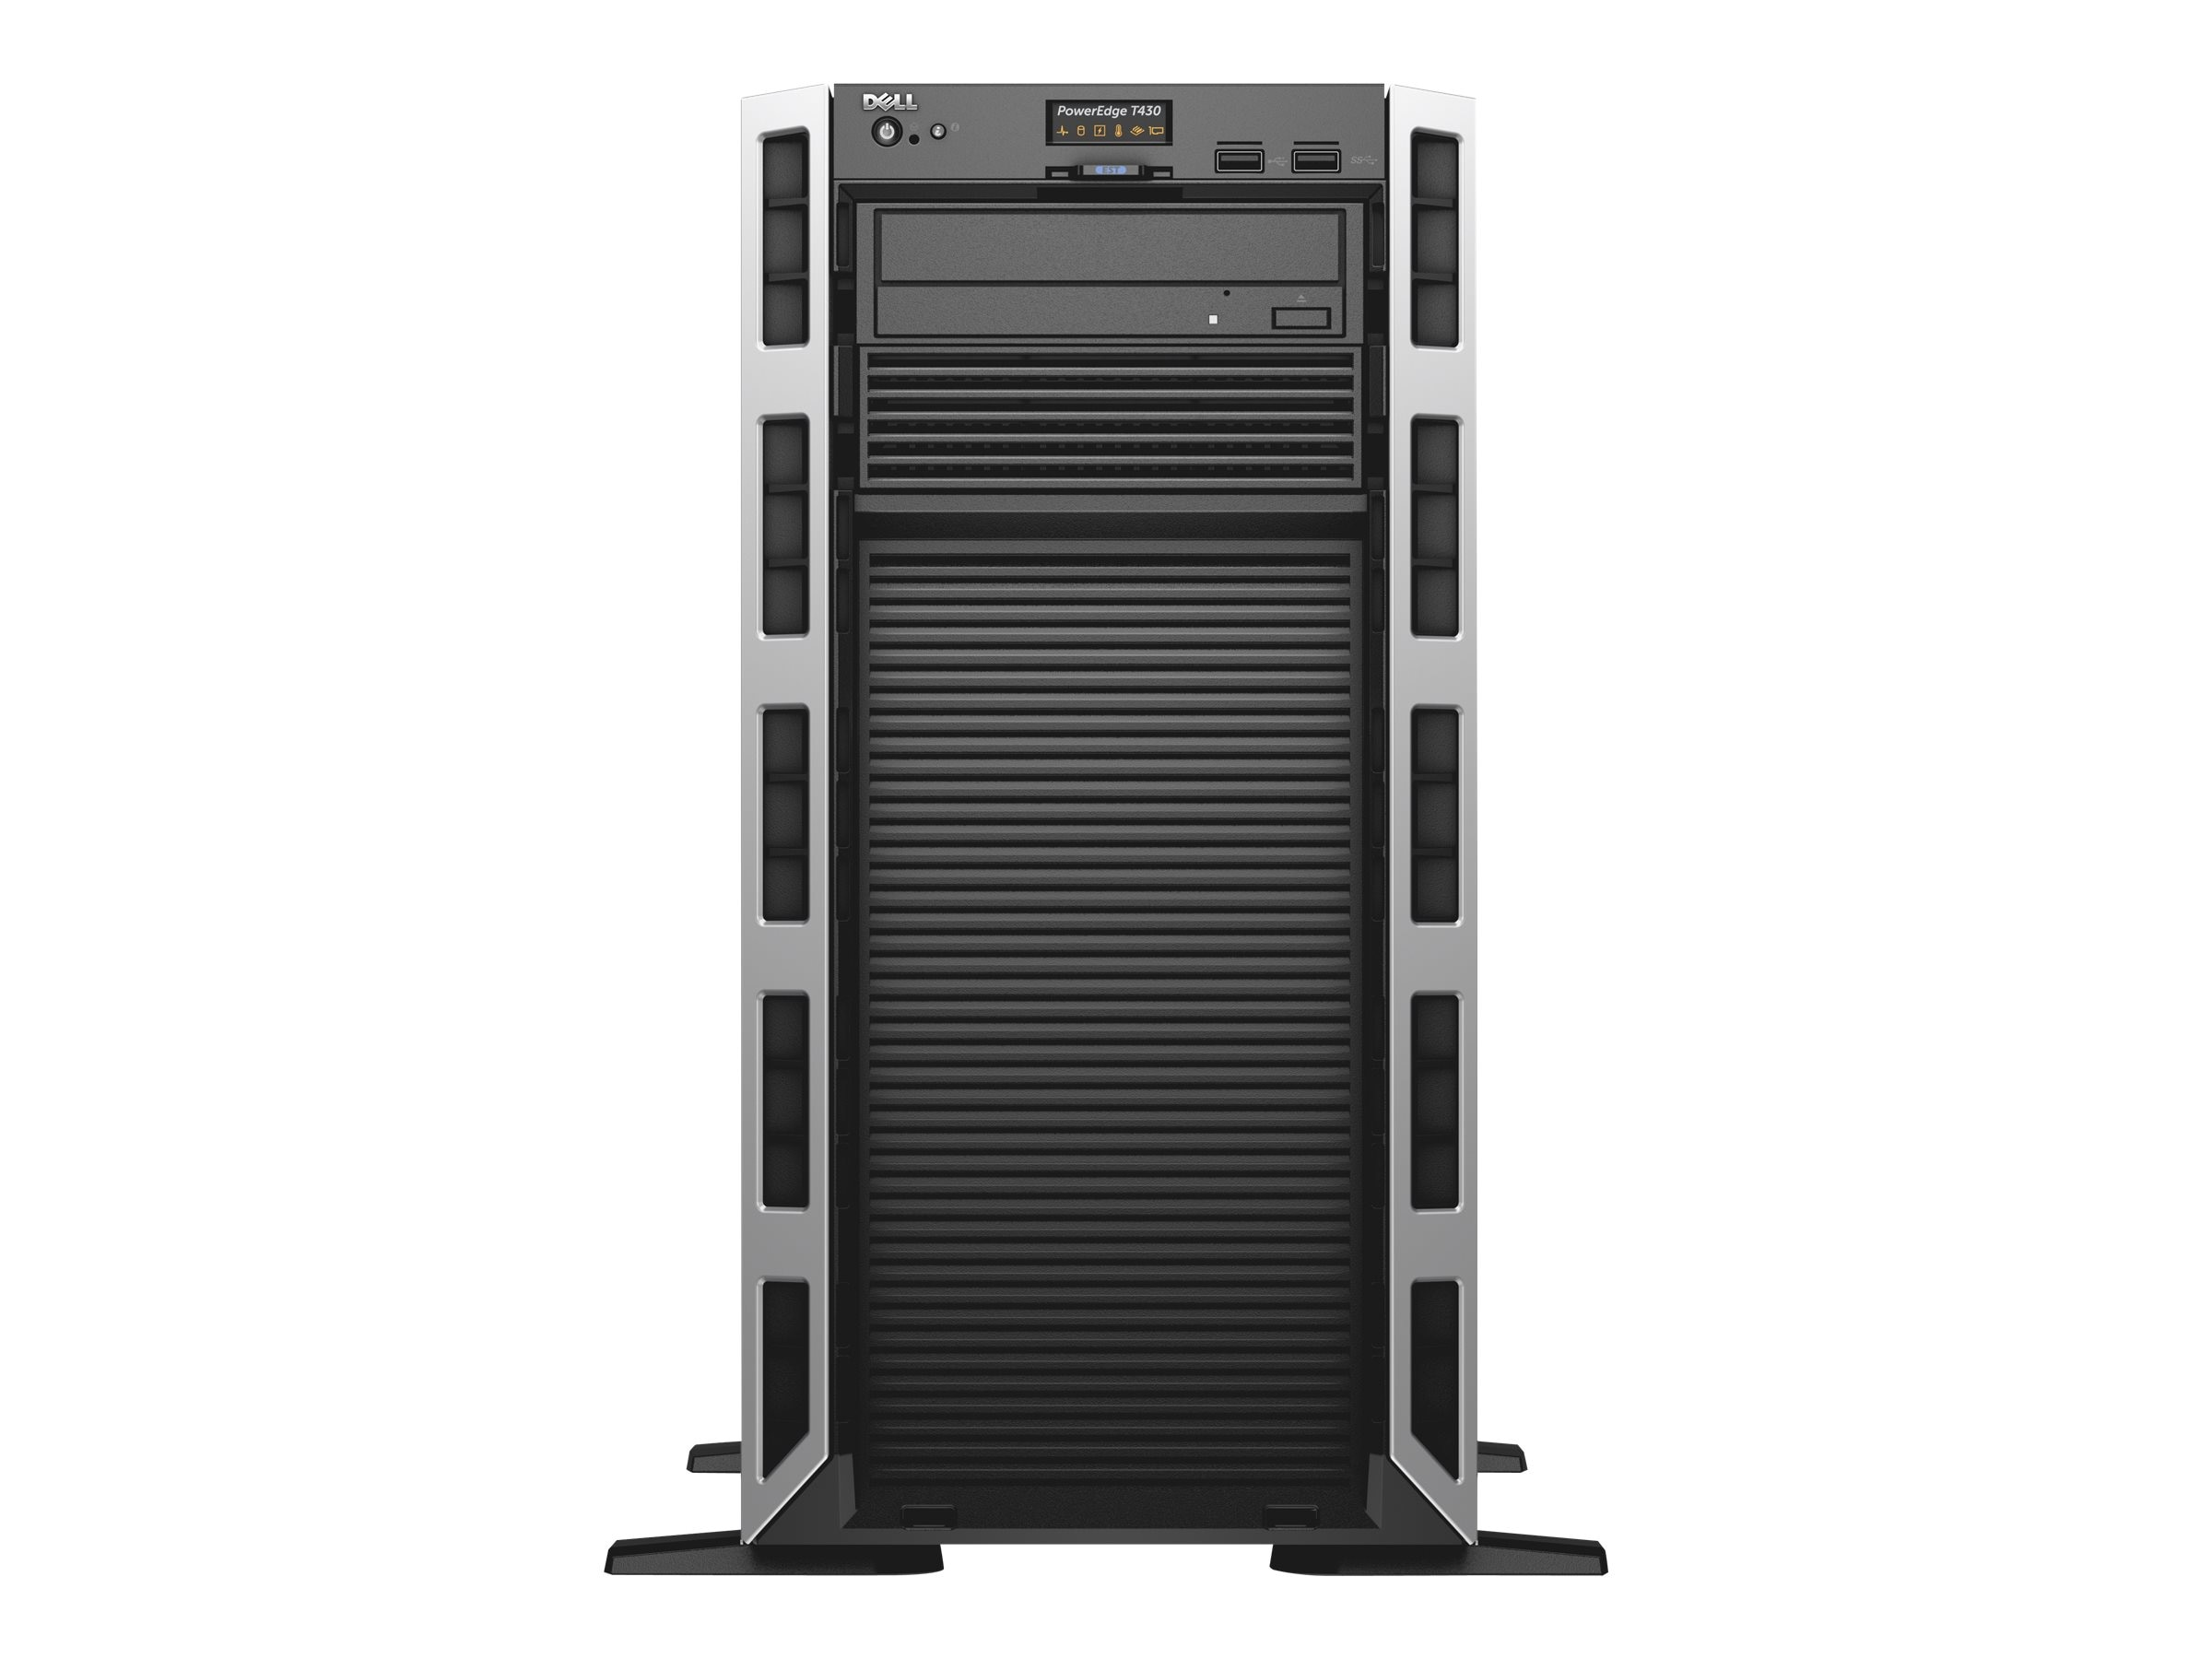 Dell PowerEdge T430 Intel 2.1GHz Xeon, 463-7666